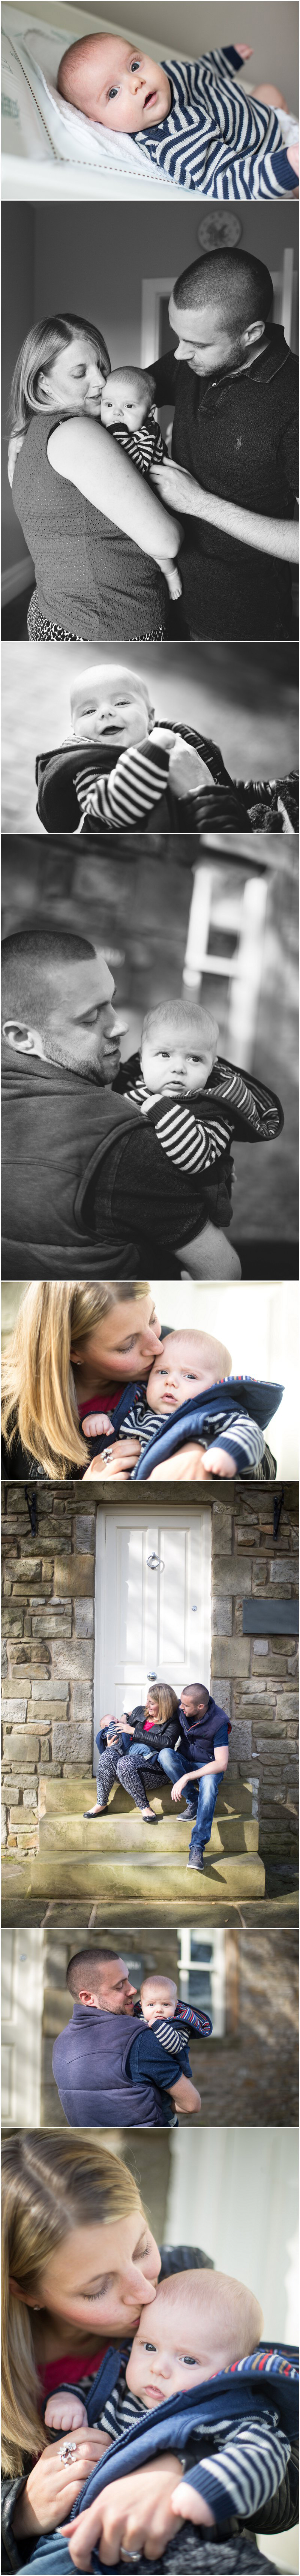 Clitheroe Family and Baby Photography shots